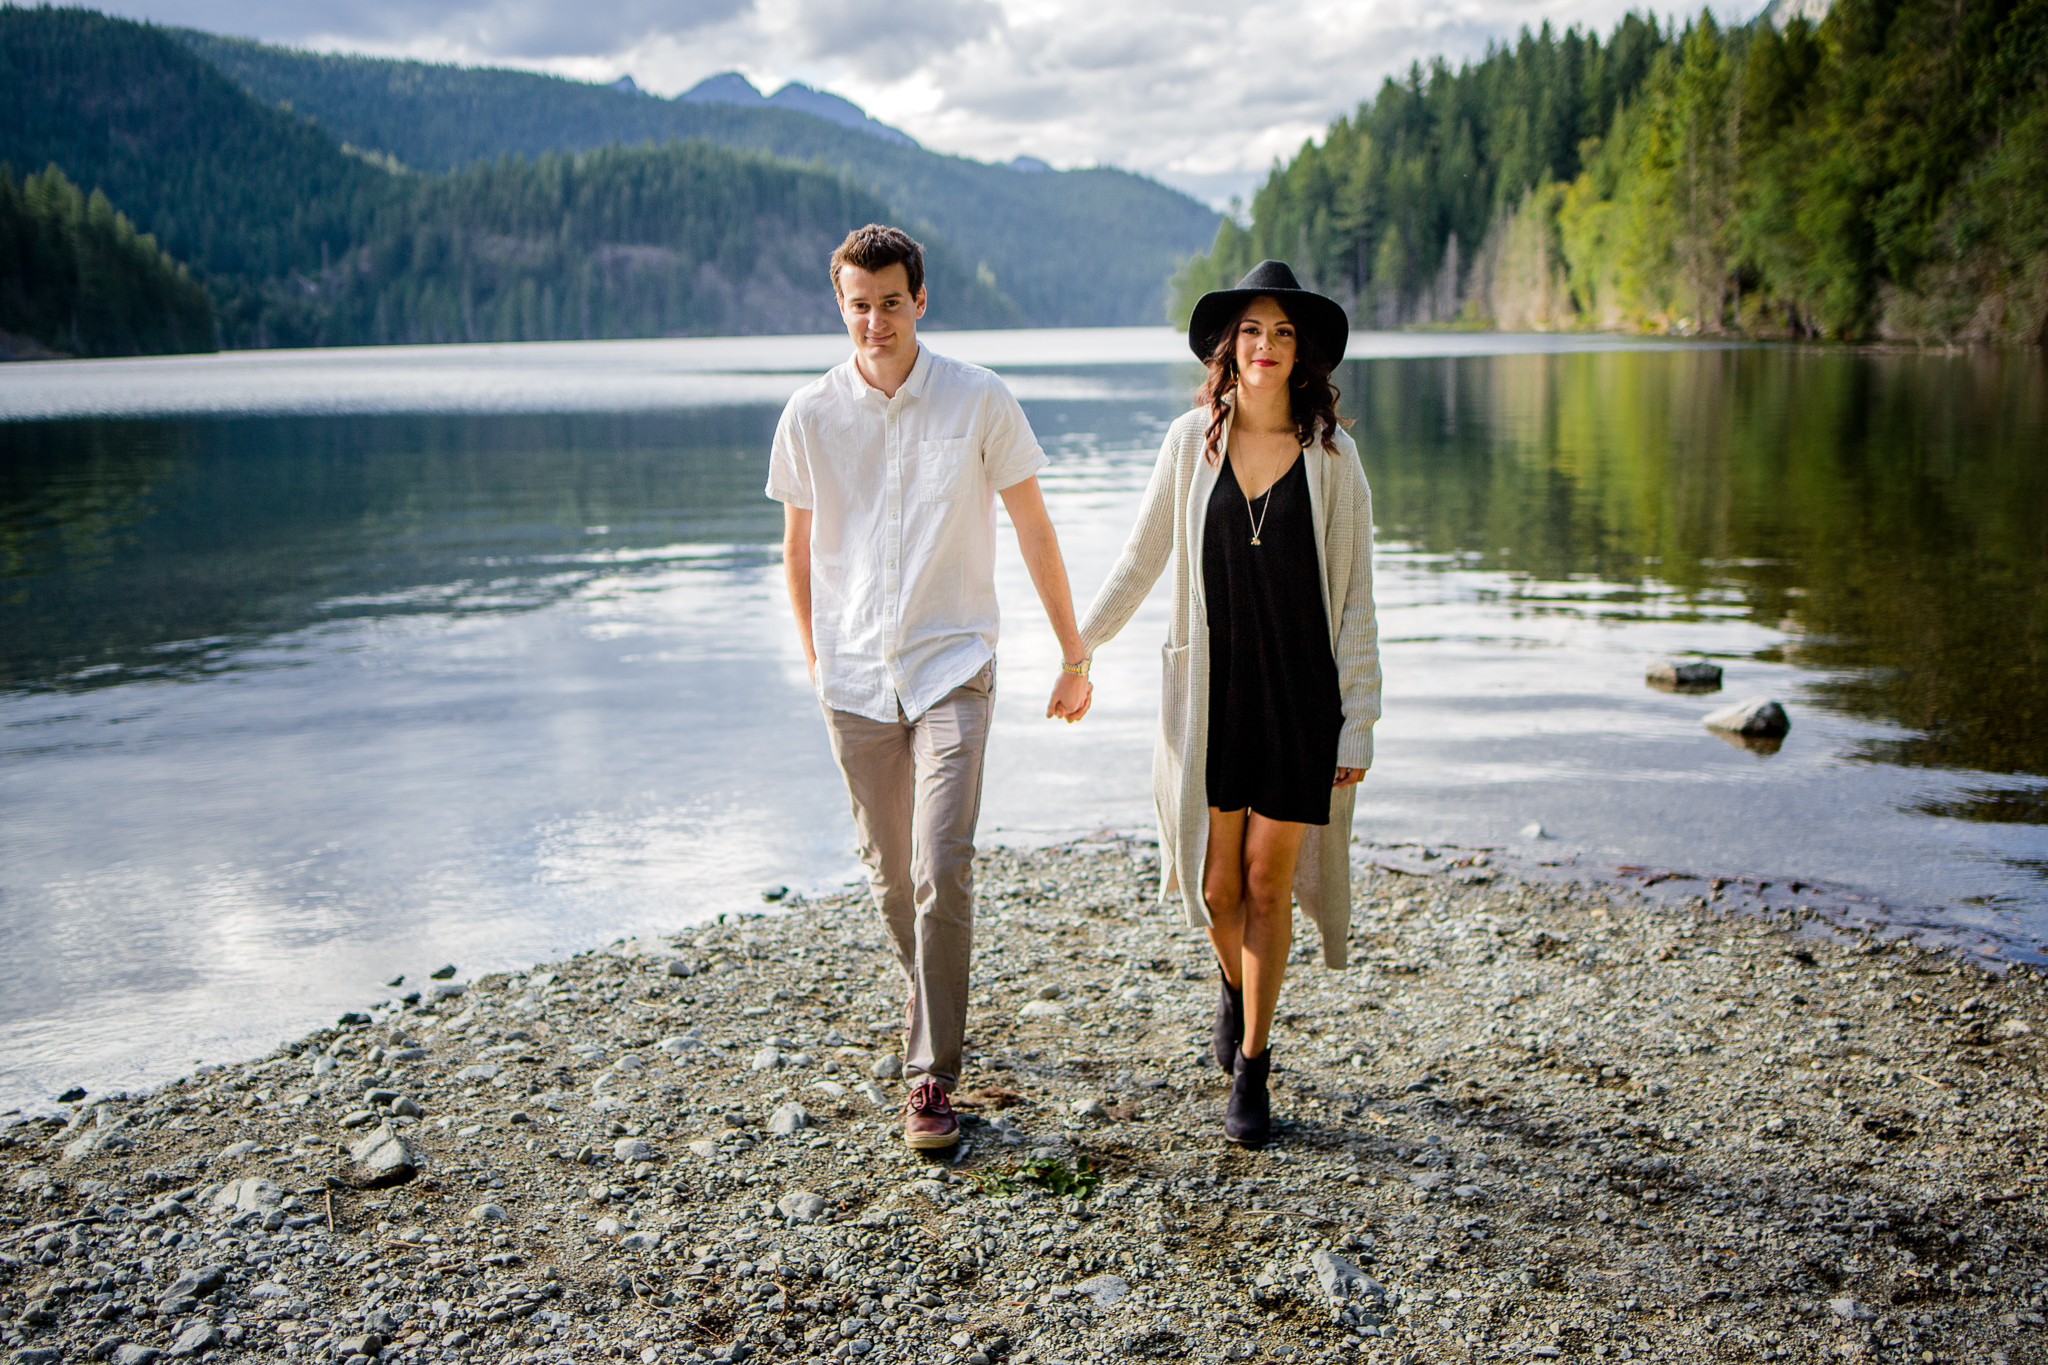 Couple walking towards camera holding hands with Buntzen Lake Landscape behind them evening still water wearing white button down shirt and black dress with hat during fun and romantic engagement photo shoot at Buntzen Lake, Port Moody, Anmore British Columbia by best couples photographer Mimsical Photography